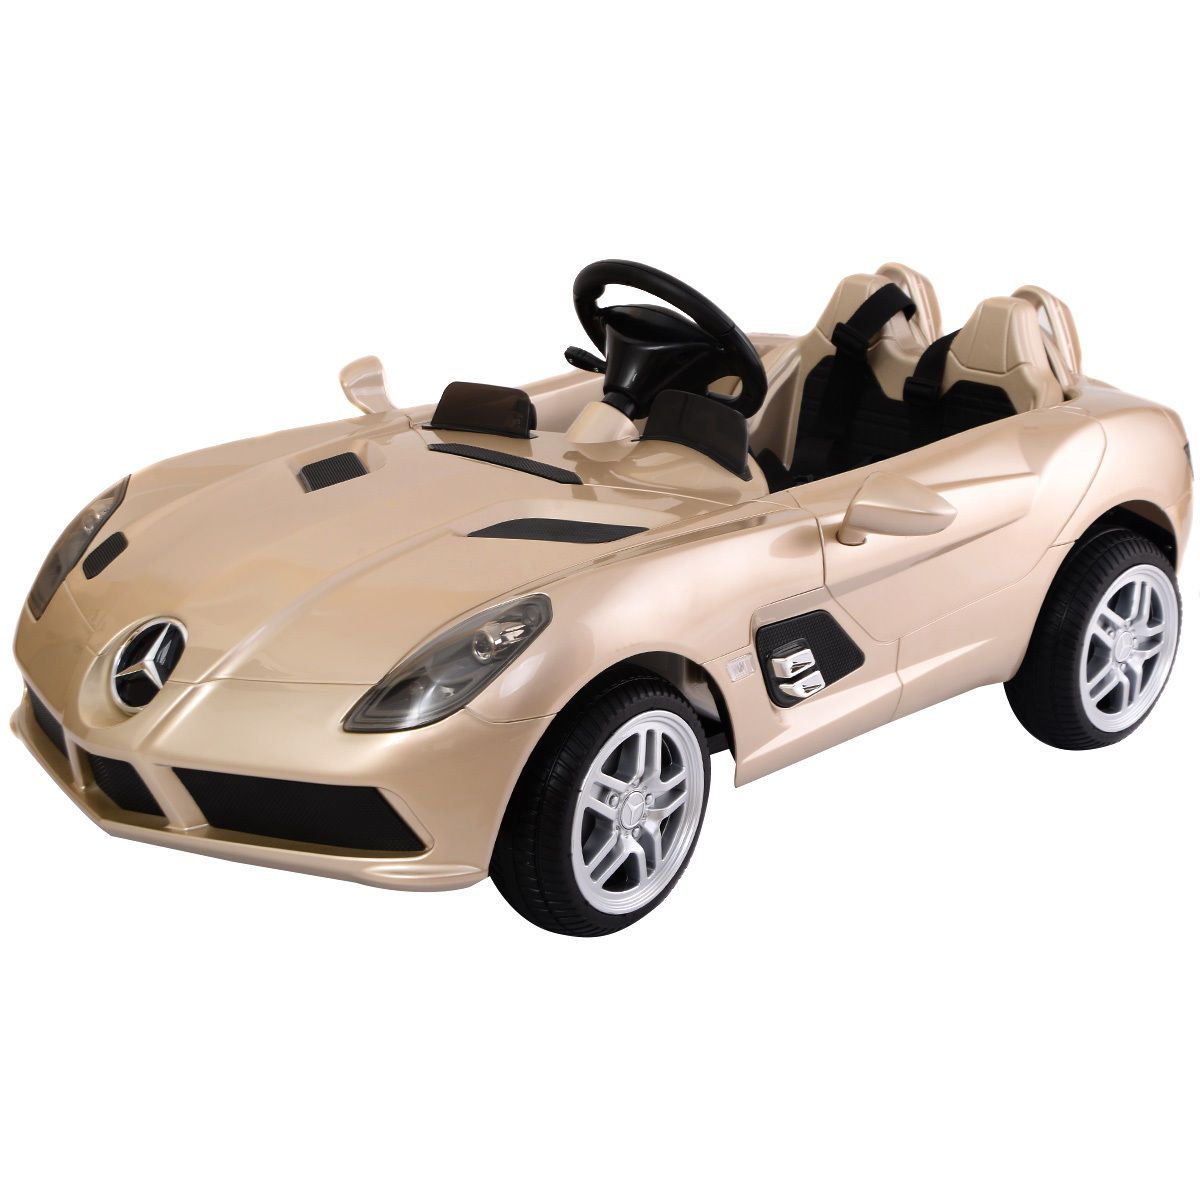 Mercedes Benz Z199 12v Electric Kids Ride On Car Licensed Mp3 Rc Remote Control